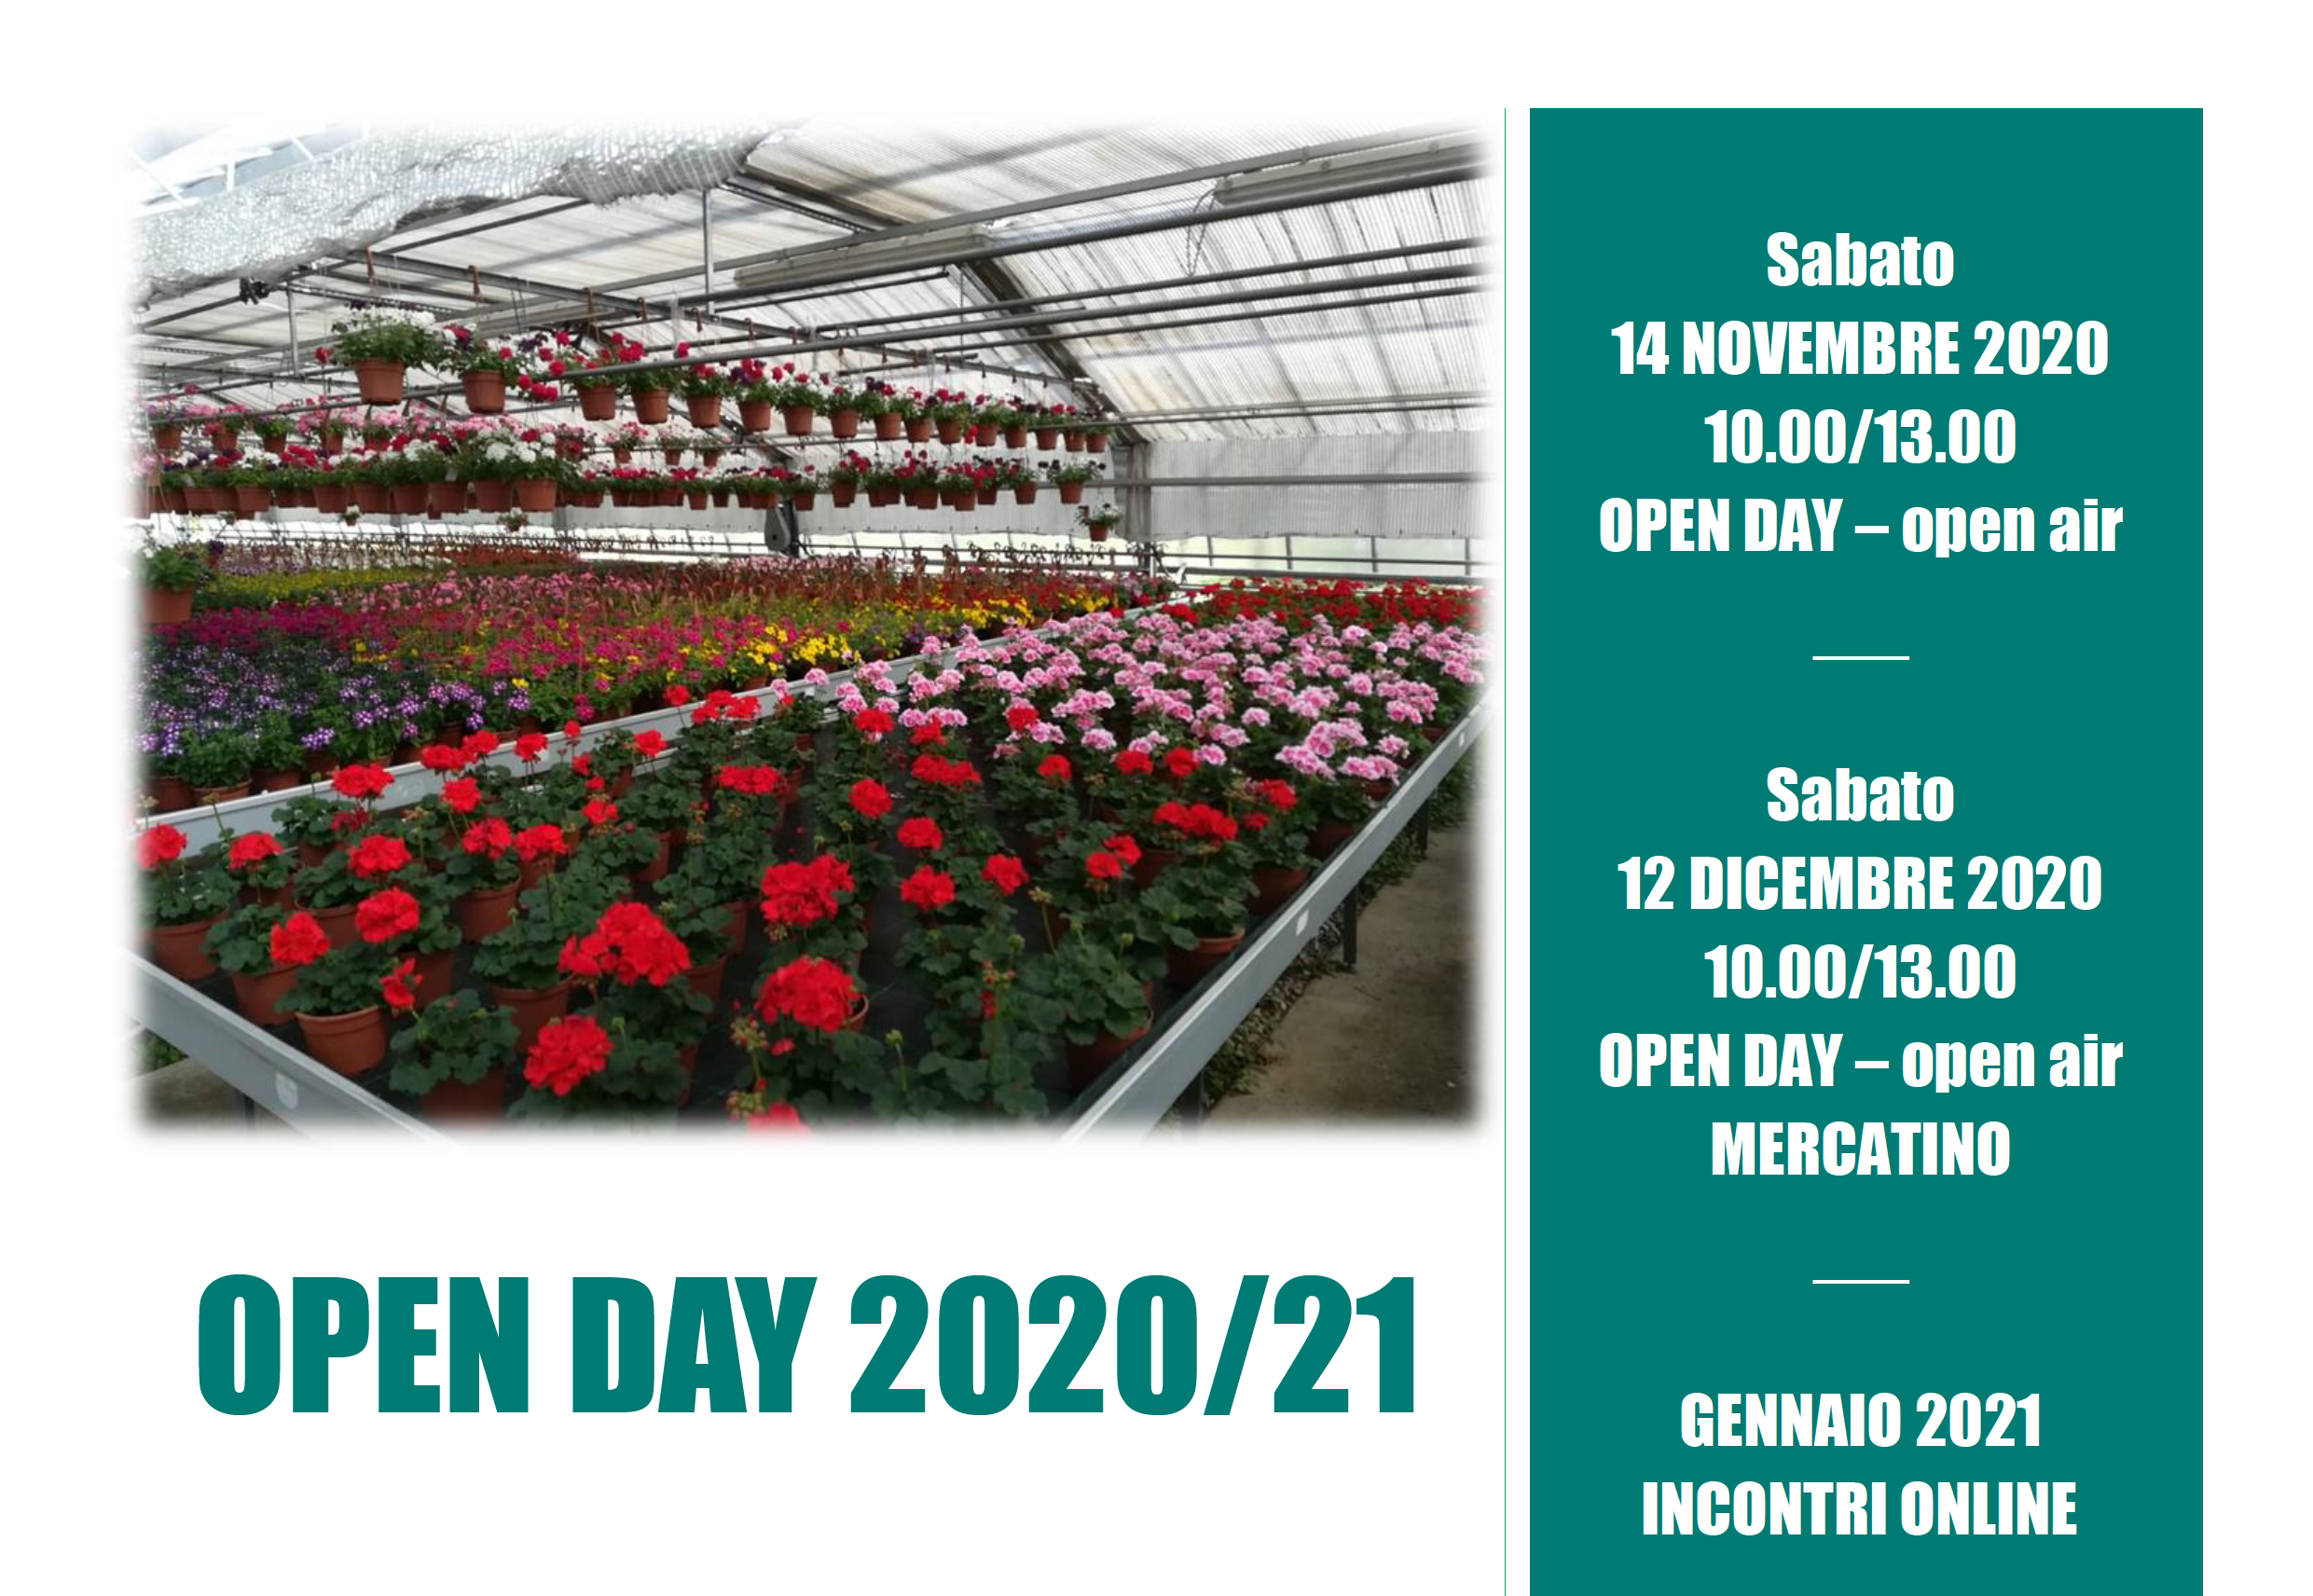 VOLANTINO_open day 2020-21.png